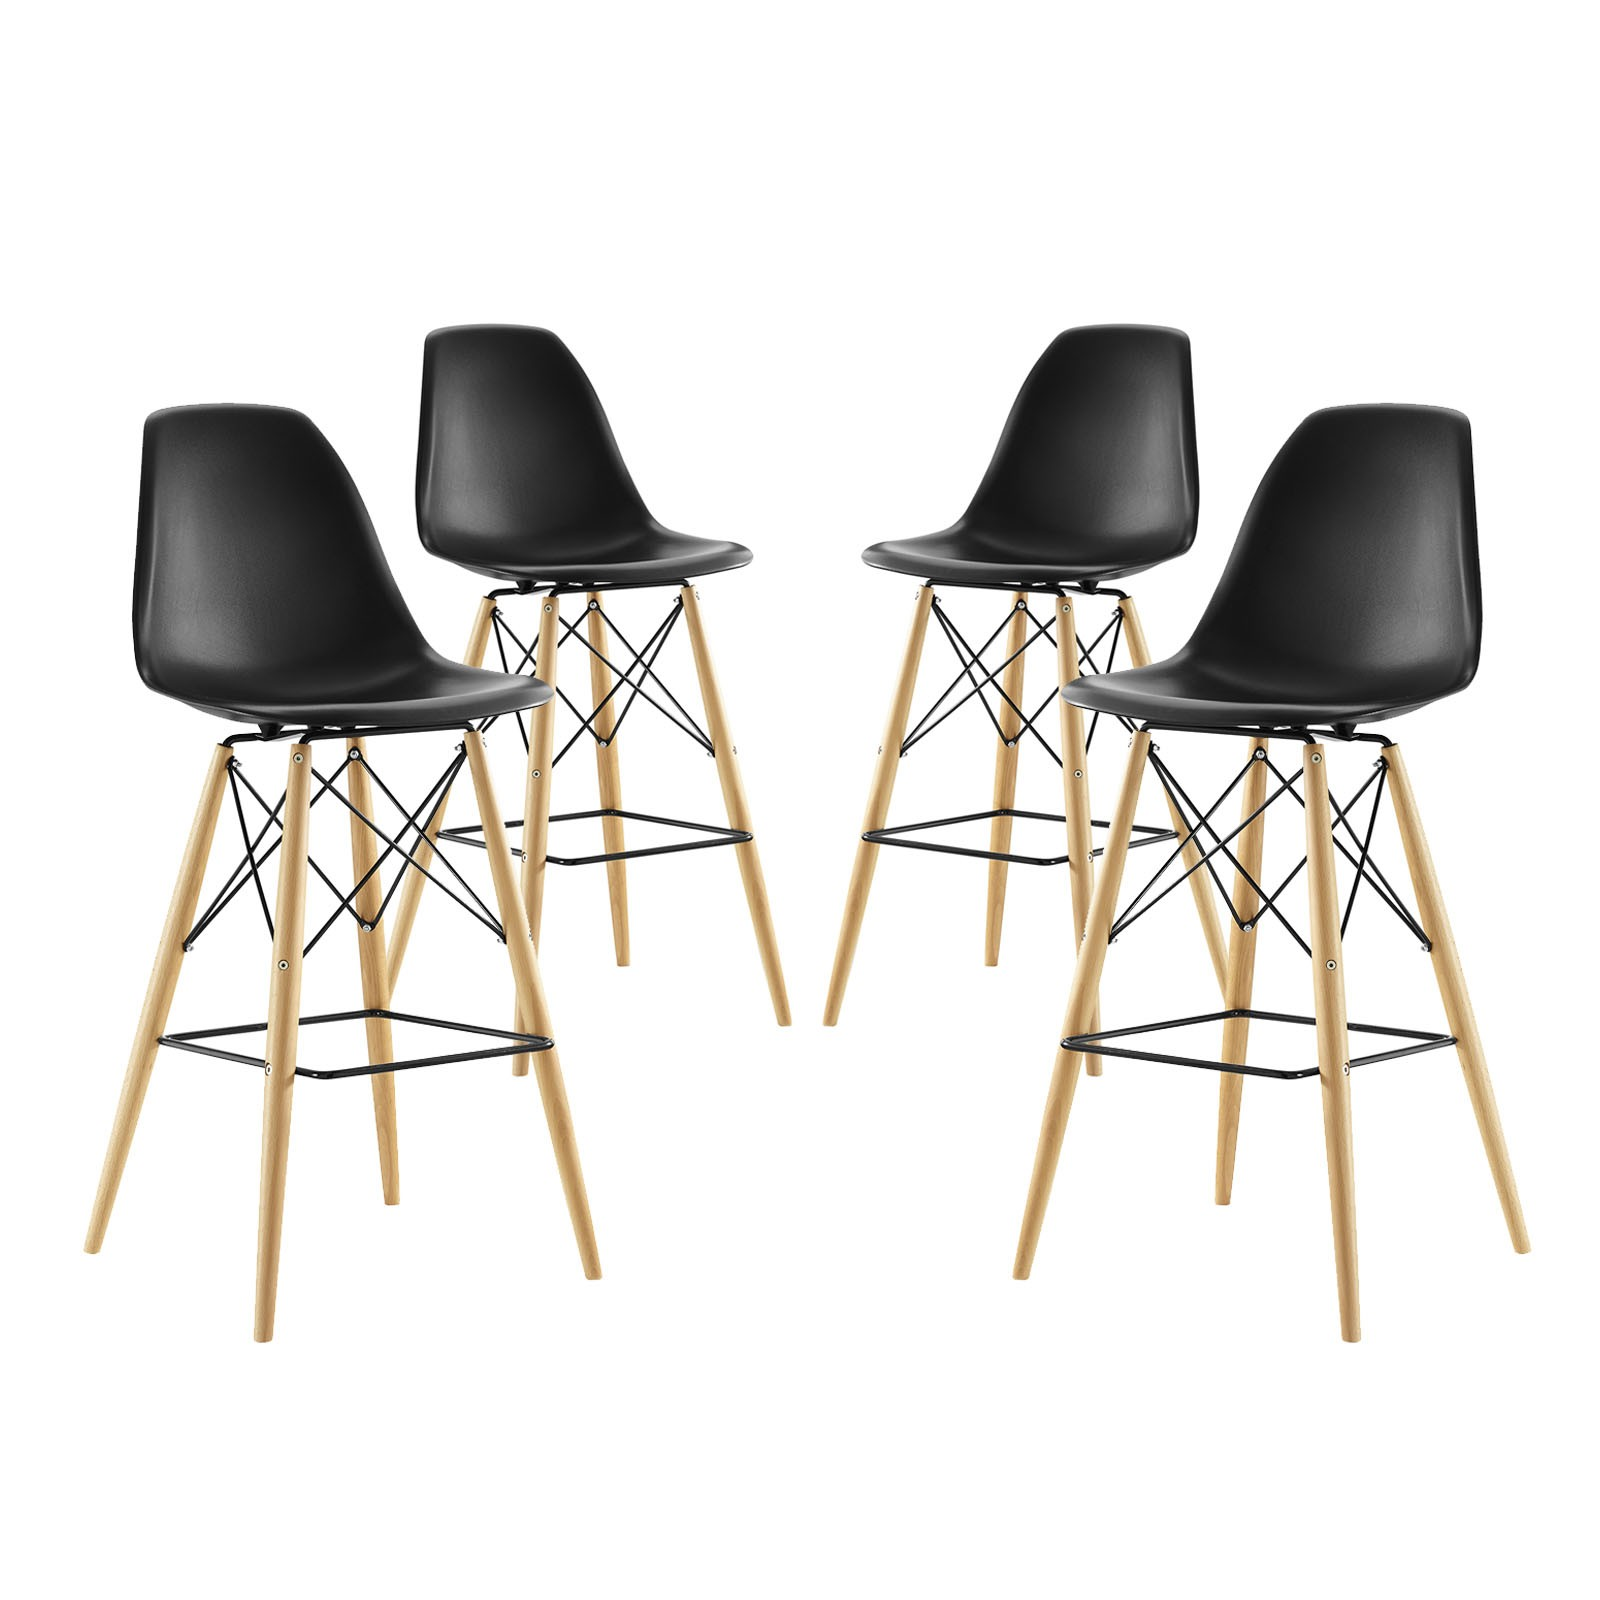 Pyramid Dining Side Bar Stool Set of 4